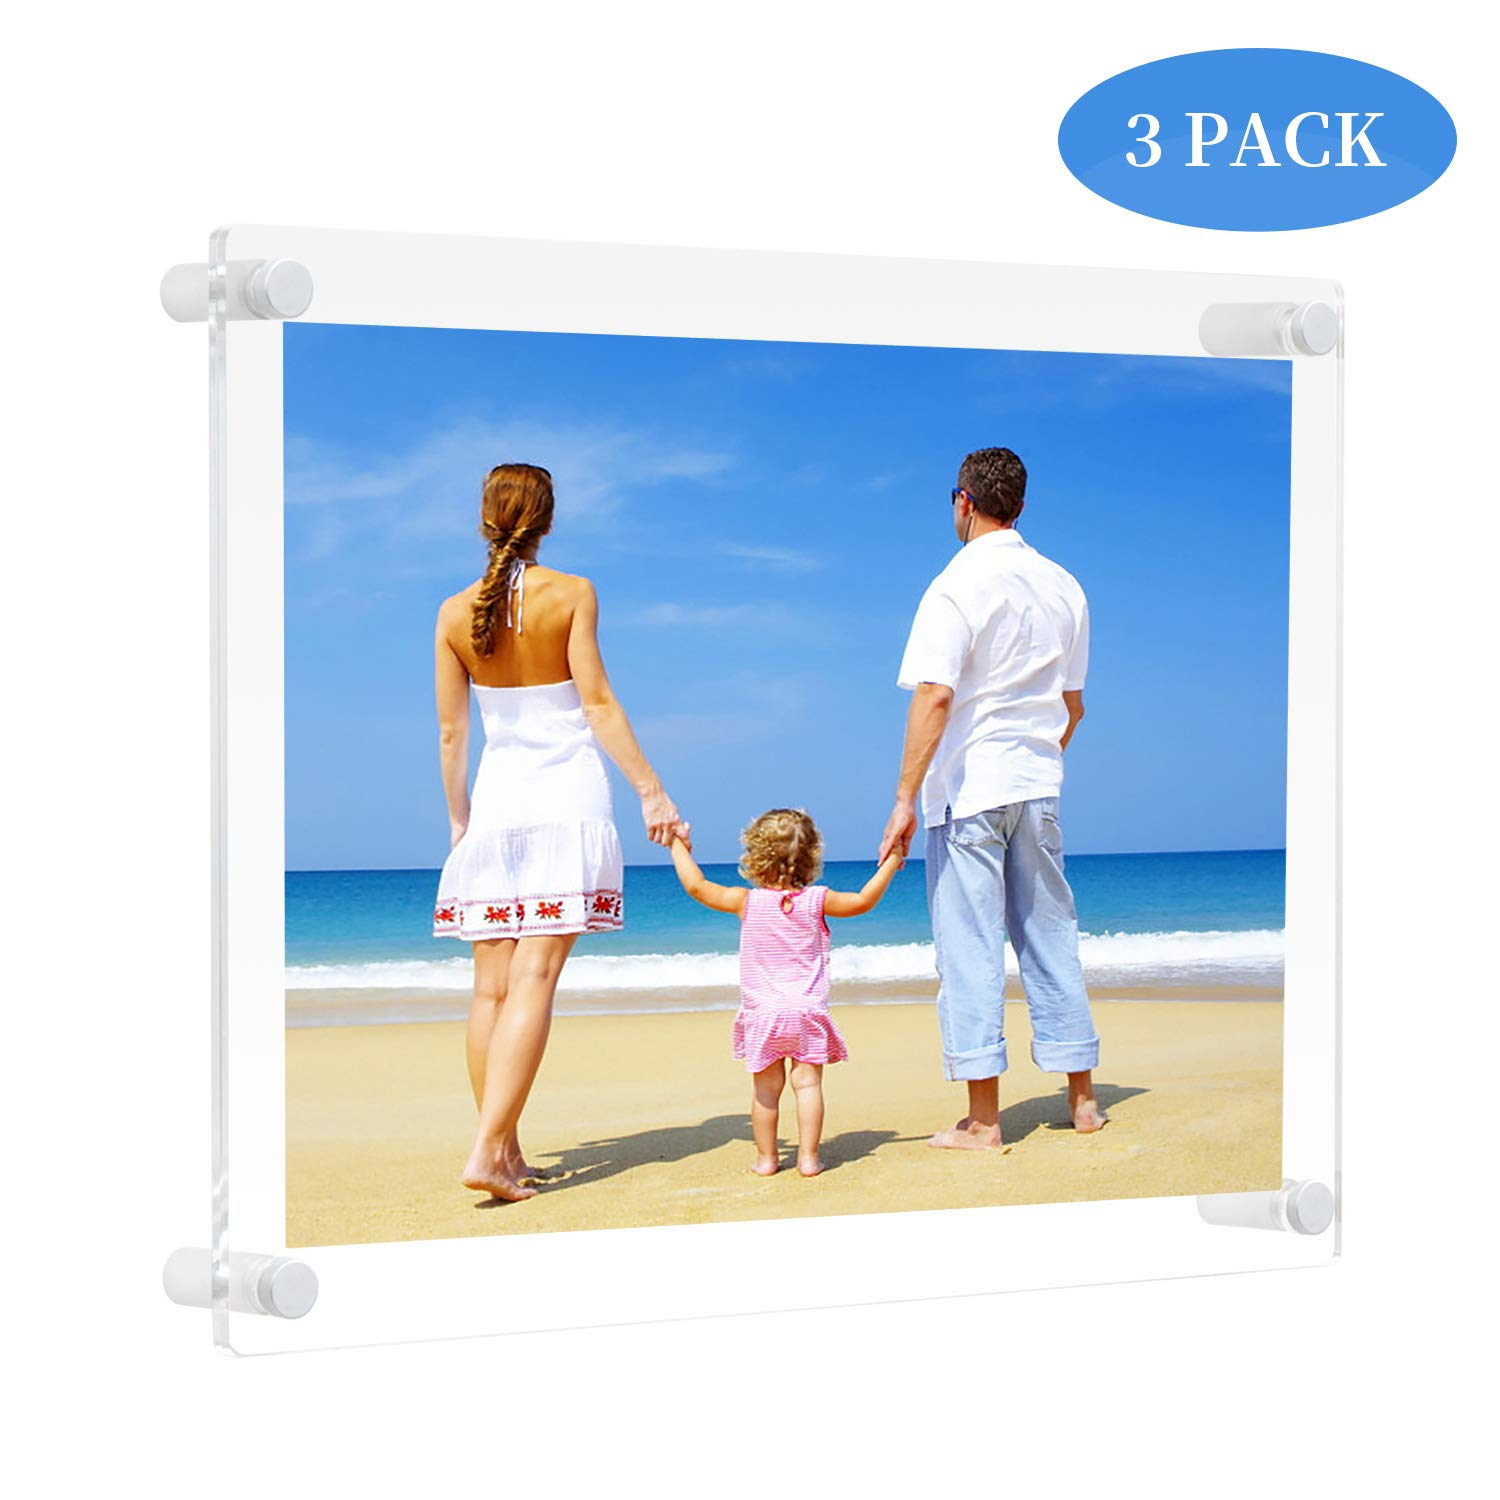 NIUBEE 3Pack 8.5x11 Clear Acrylic Wall Mount Picture Frame Floating Frames for Photography Display